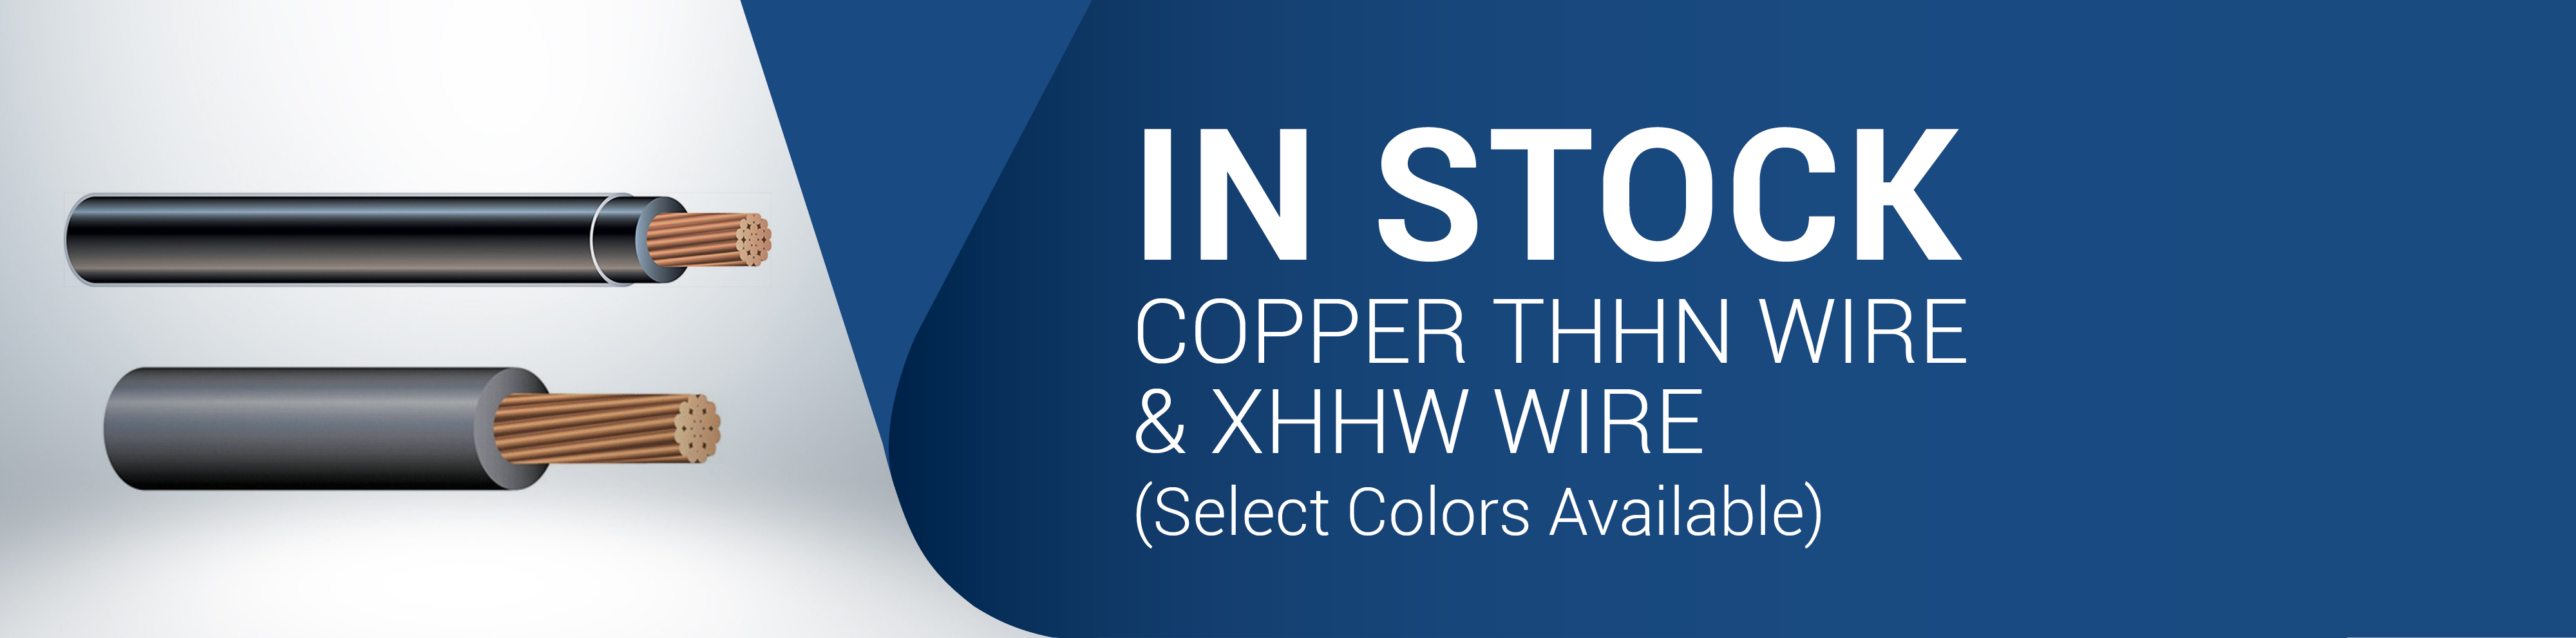 Copper THHN & XHHW Wire Available in Colors